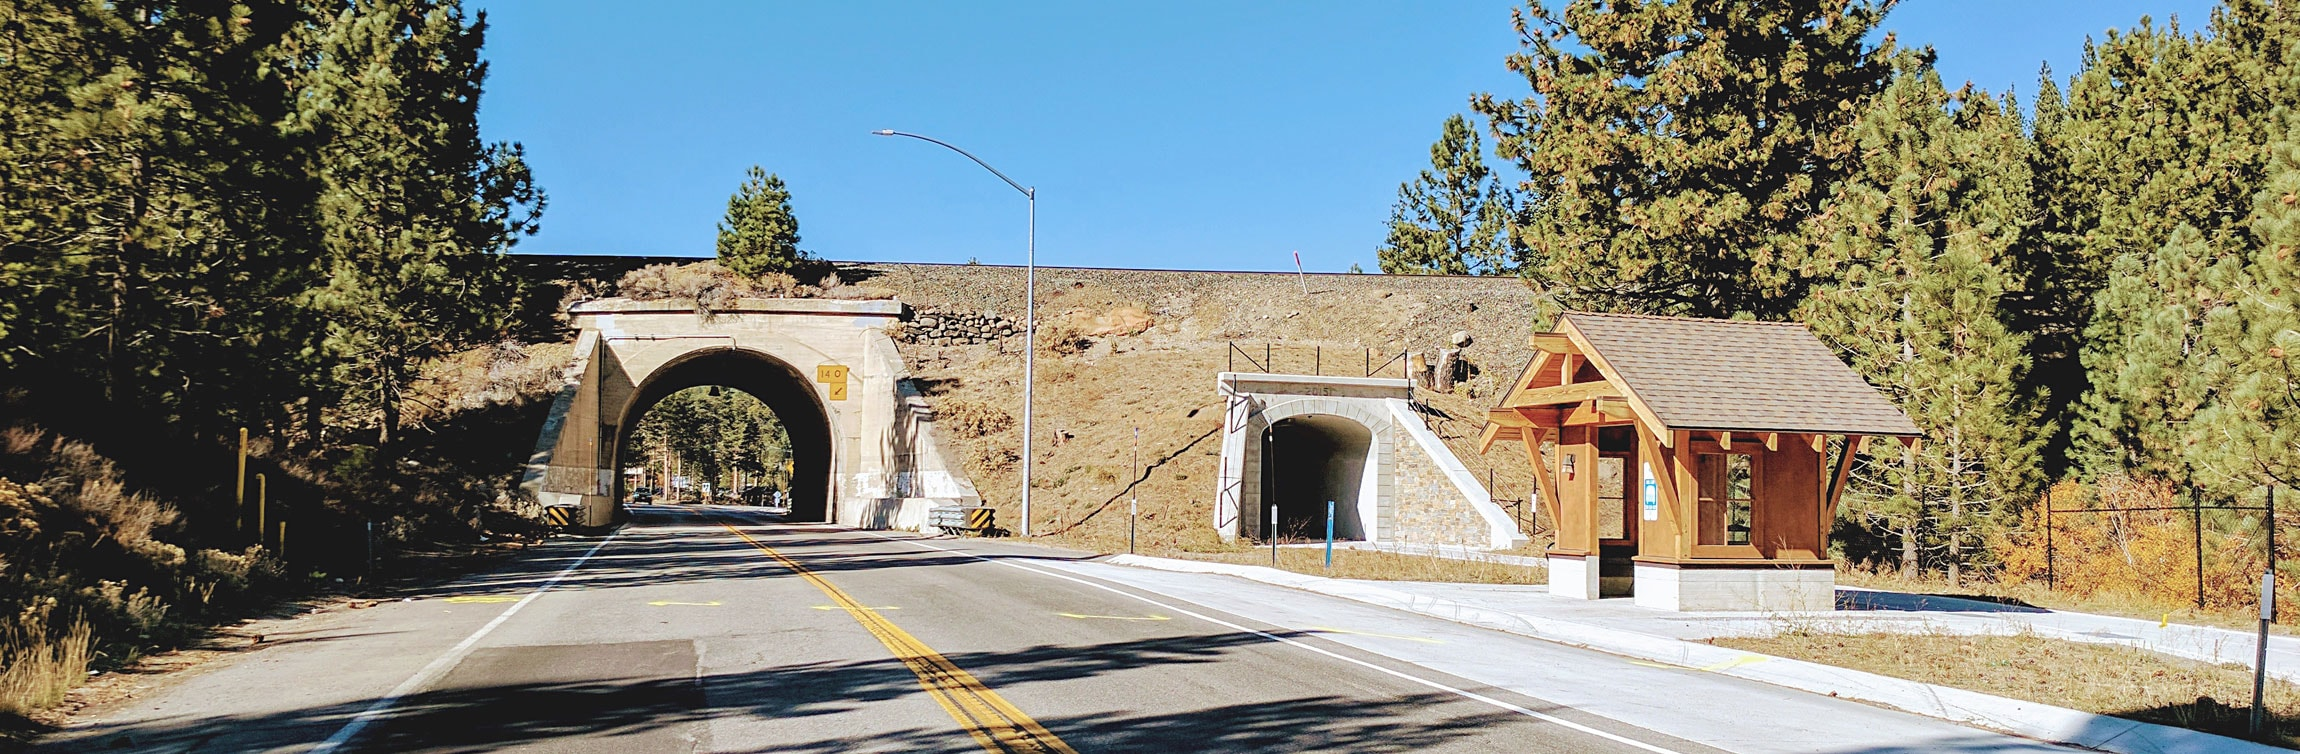 truckee_tahoe_state_route_89_uprr_underpass_mousehole_monitoring_hdr_engineering_gordon_n_ball_caltrans_right_of_way_union_pacific_railroad_tunnel_survey_project_sage_land_surveying